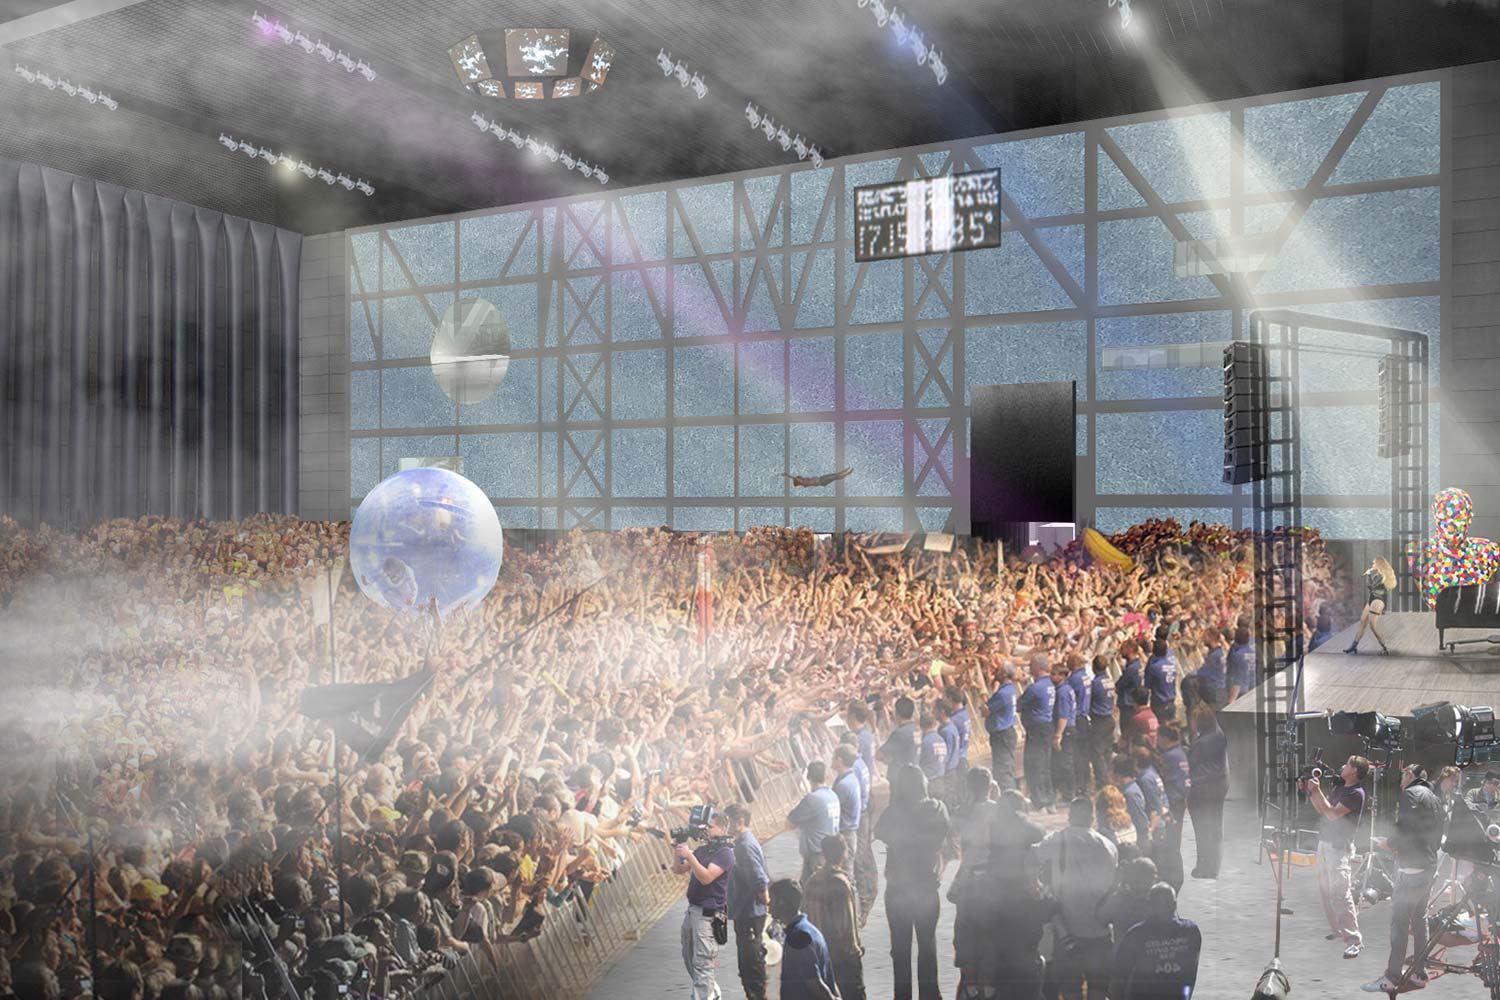 A concert taking place at The Factory